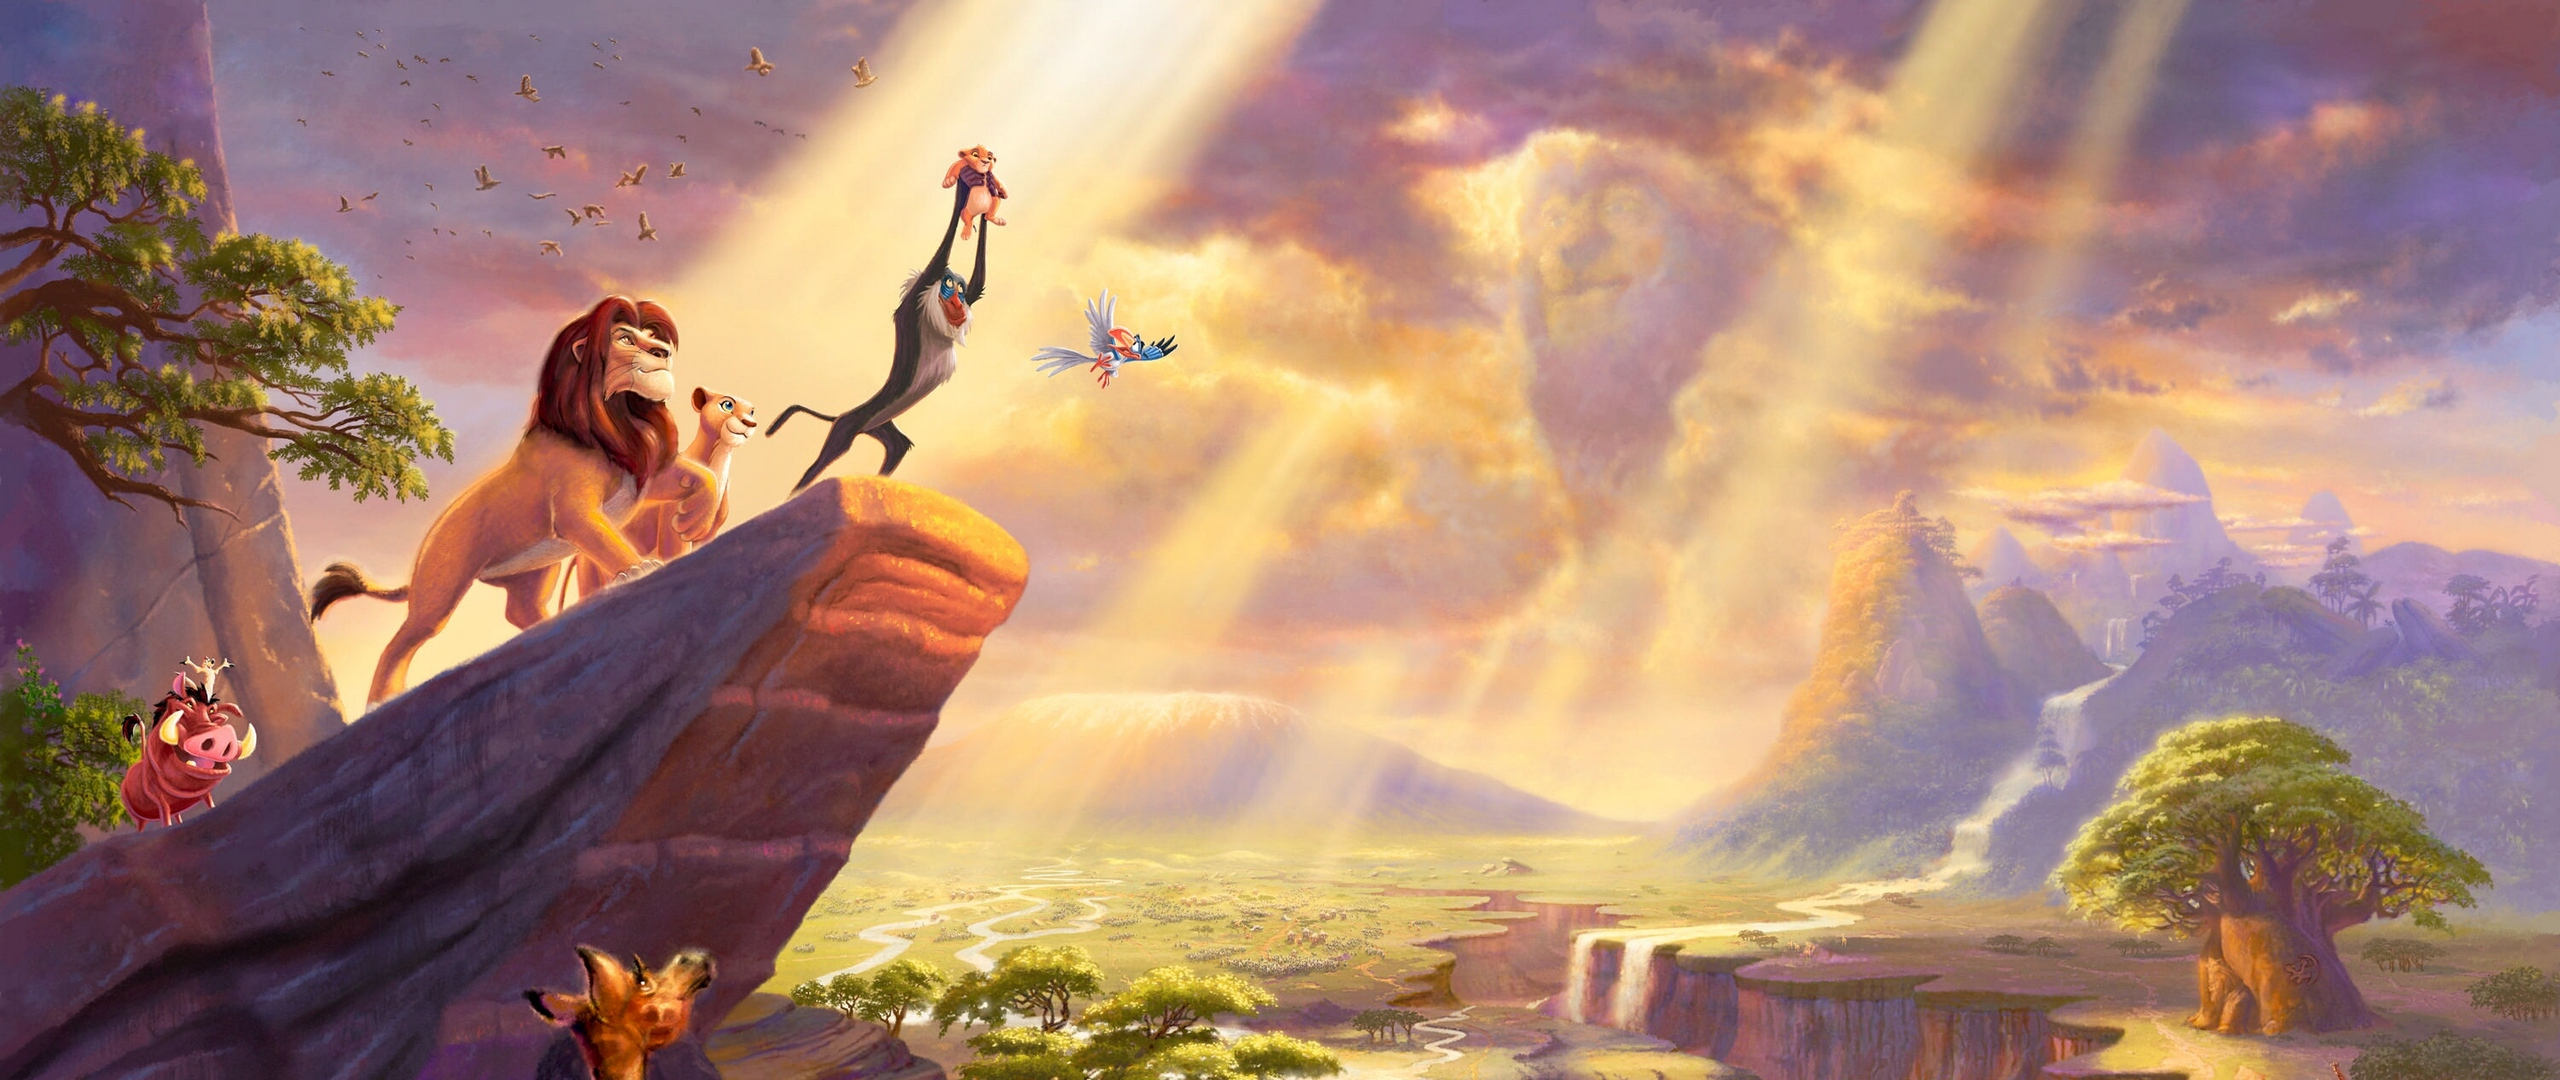 Disney Films The Lion King 1994 By Joei Conwell An Adult Perspective